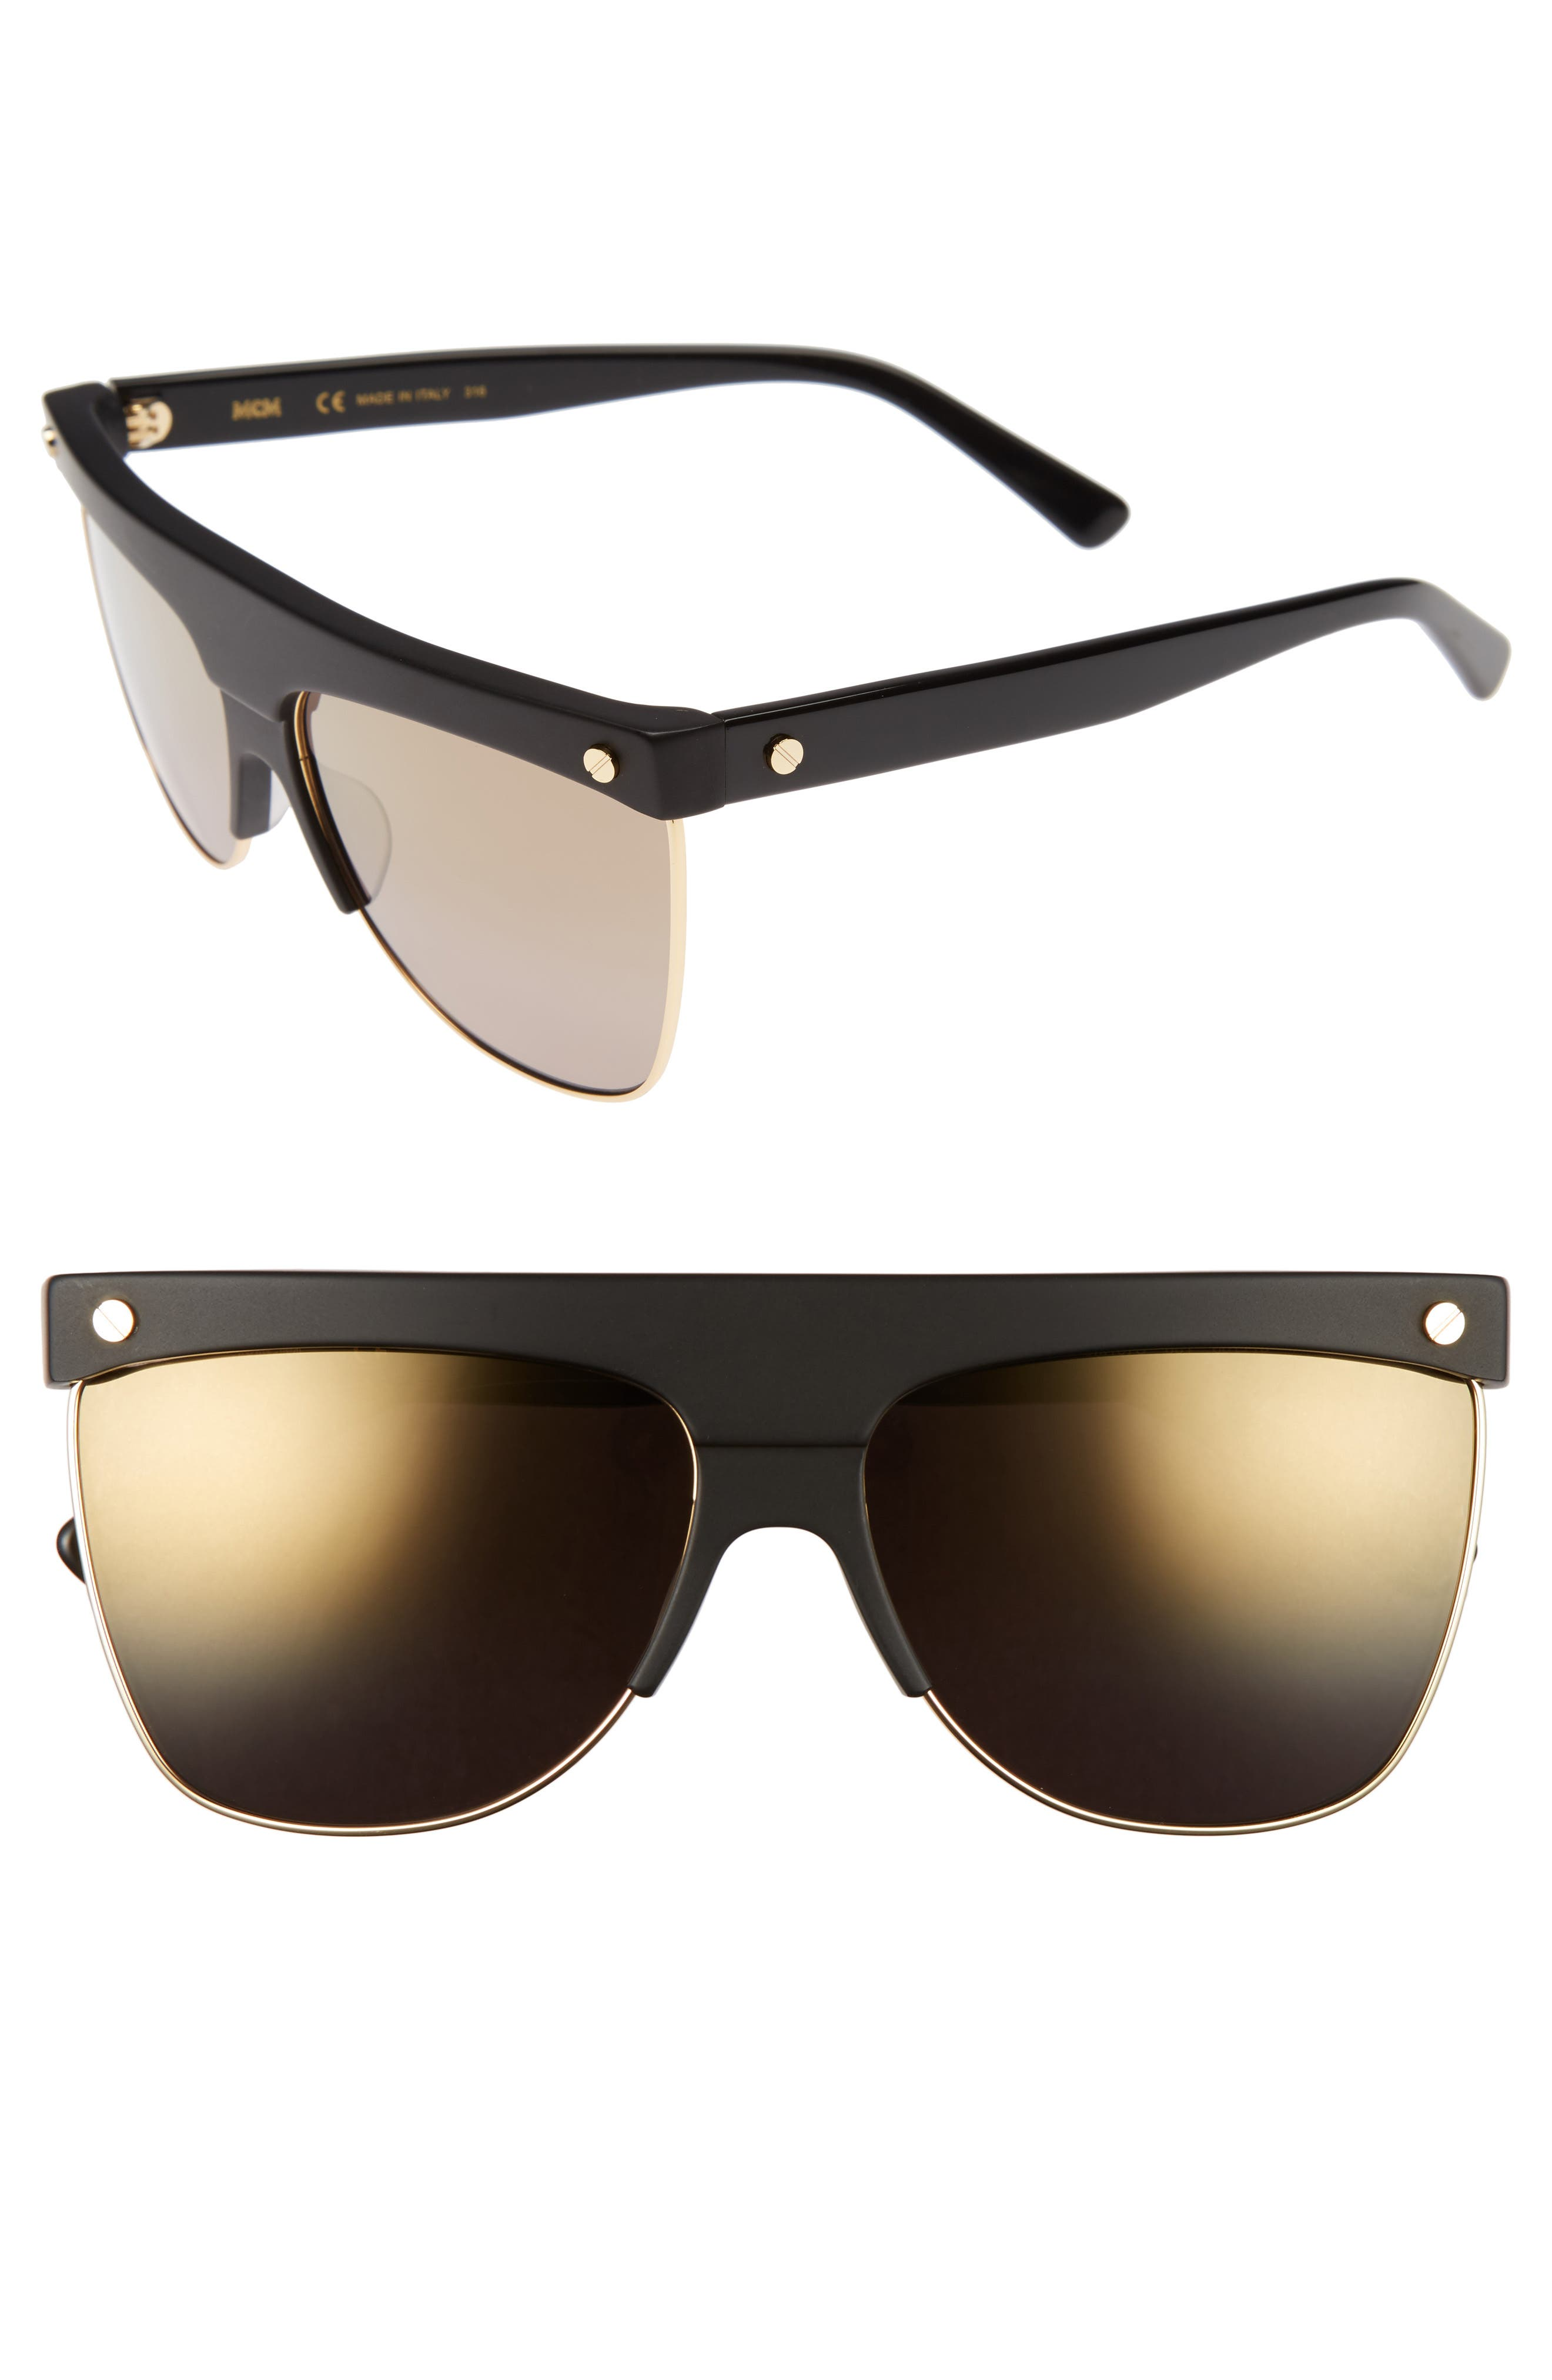 60mm Aviator Sunglasses,                             Alternate thumbnail 2, color,                             001